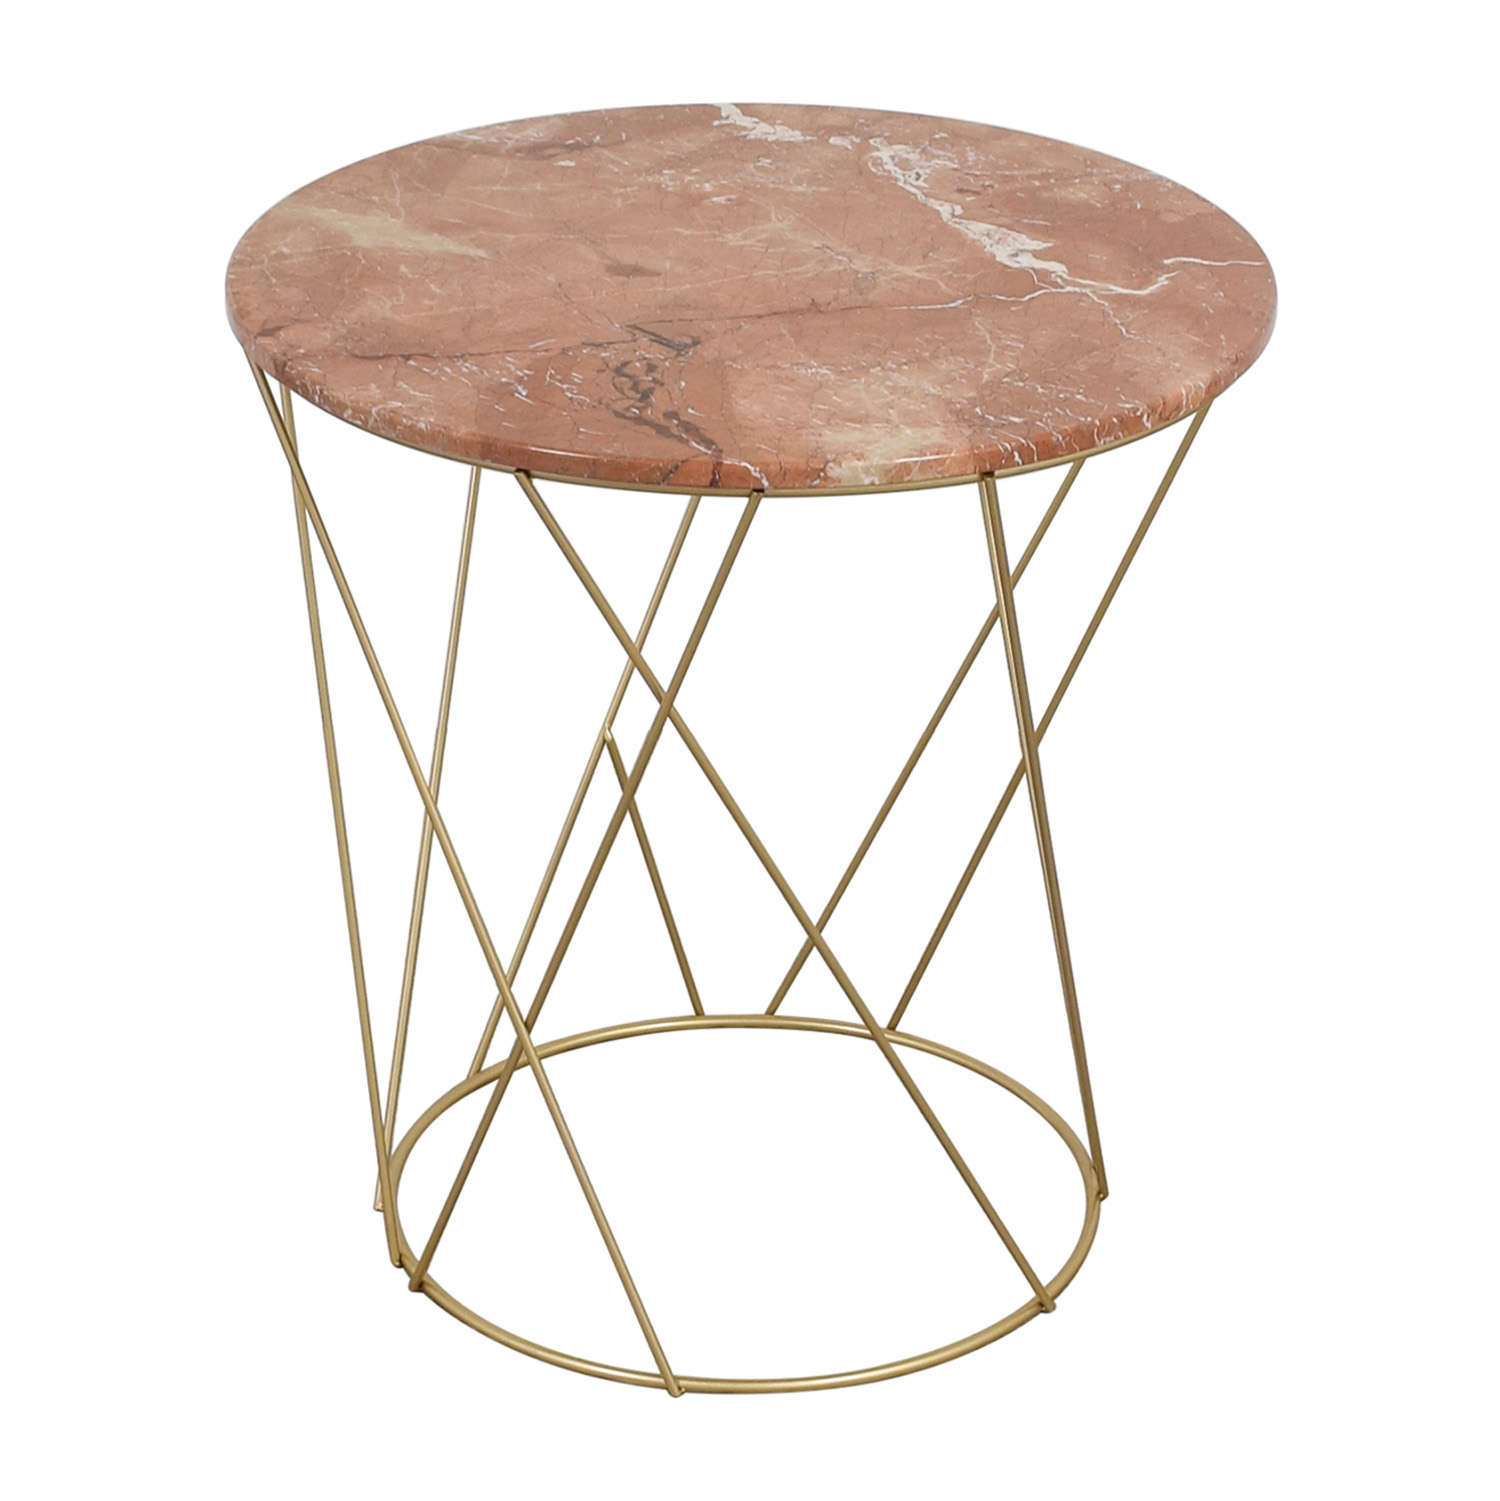 off lotus pink gold round marble table tables used accent pottery barn dining bench square patio umbrella light shower head kitchen chest set teton corner for bedroom metal garden